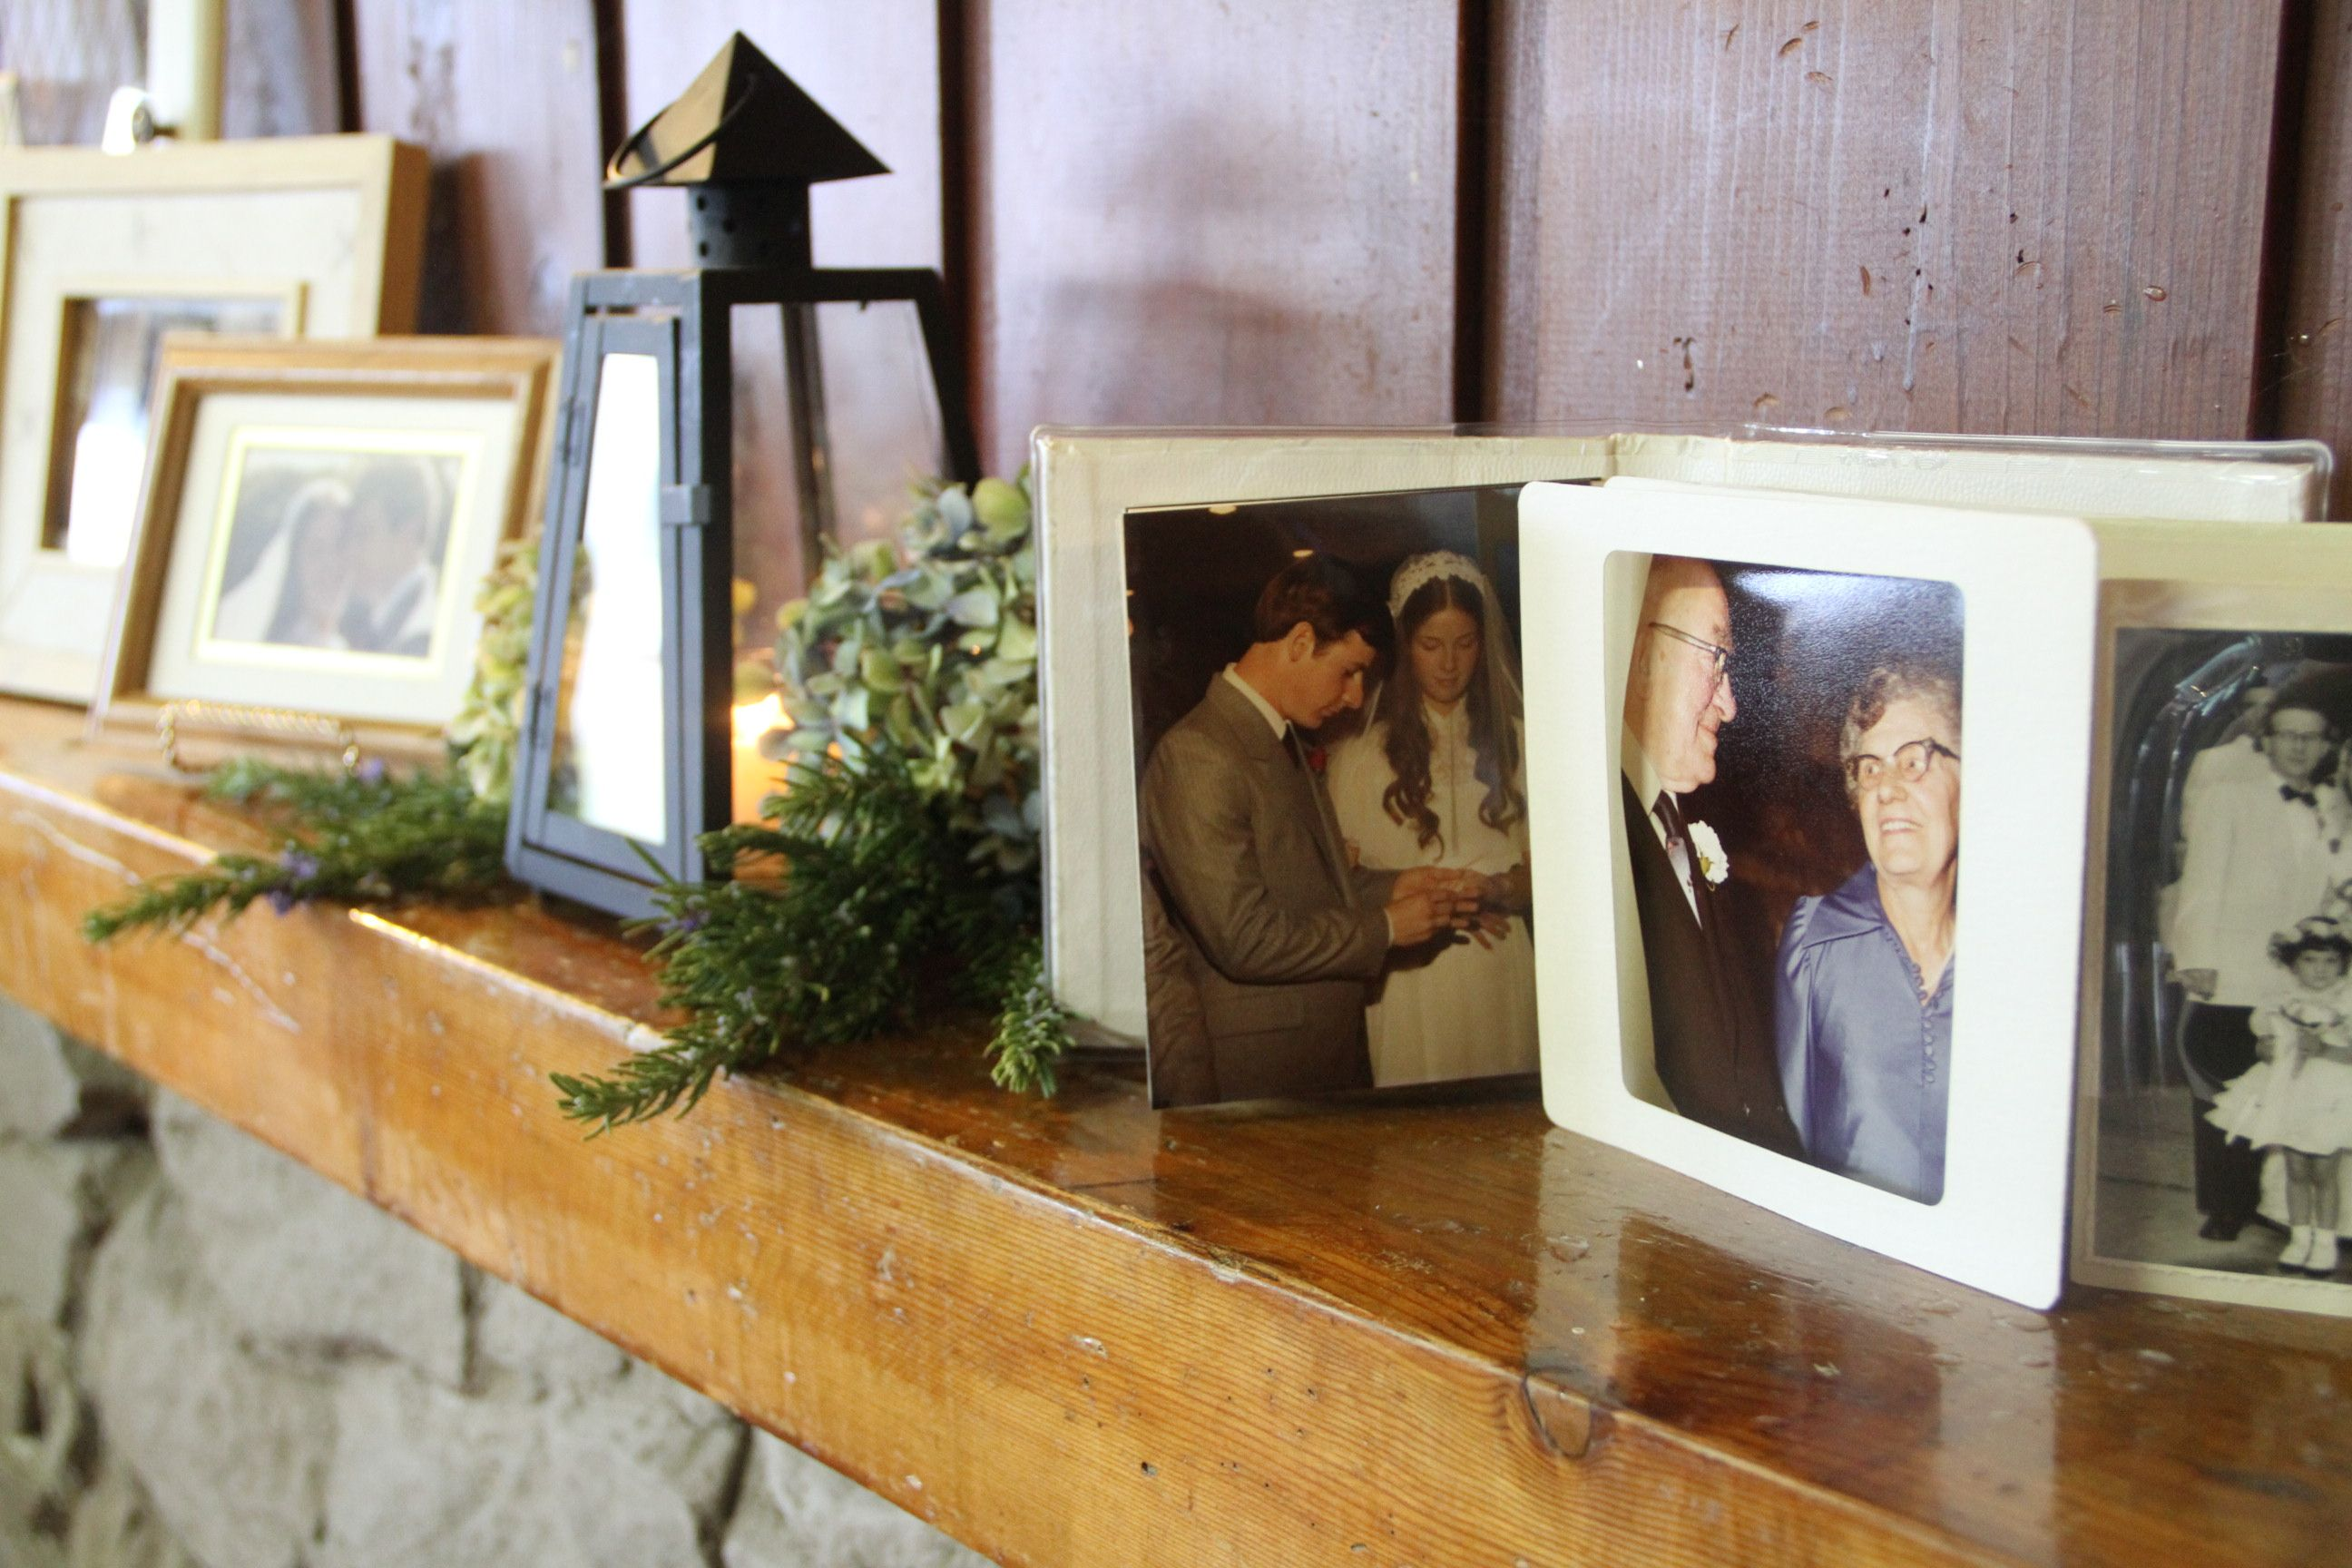 A celebration of love. Family wedding photos line the mantle.